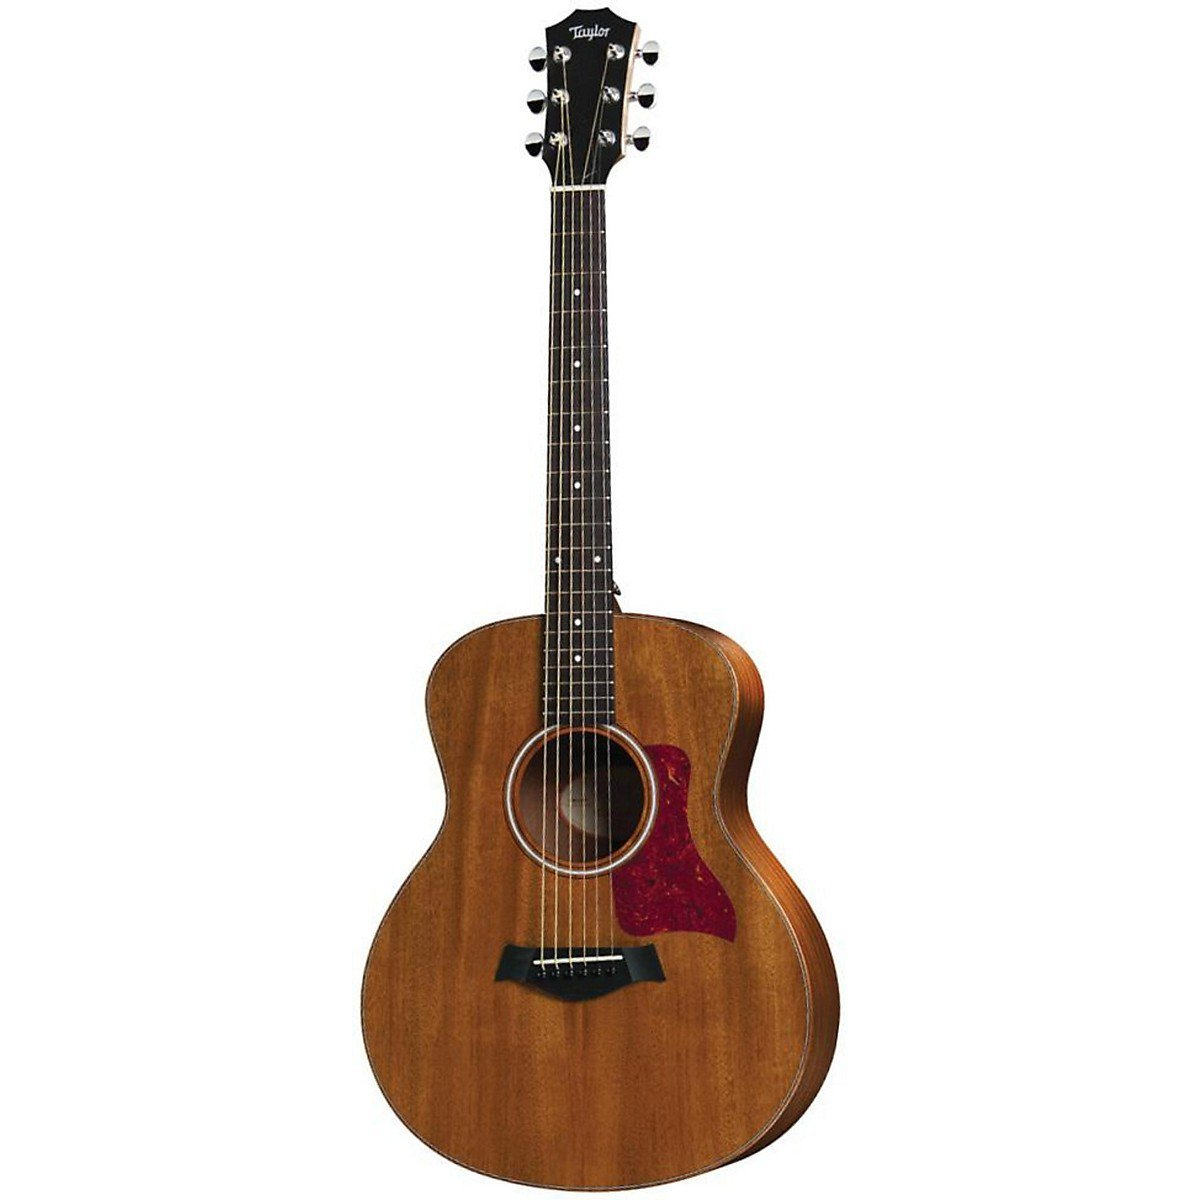 Taylor GS Mini Mahogany GS Mini Acoustic Guitar - best beginner acoustic guitar